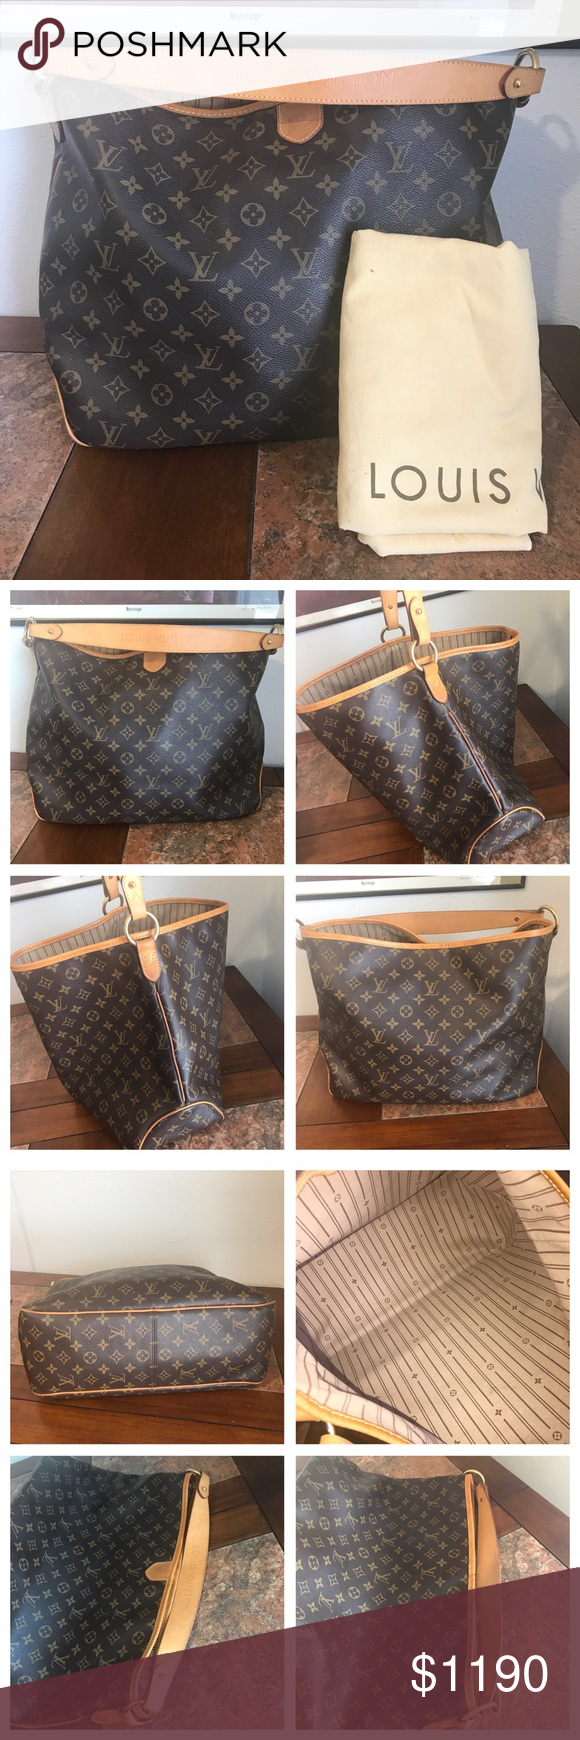 4b6fdcd1bb1 Louis Vuitton Monogram Delightful MM 100%. Authentic Louis Vuitton  Delightful Mm Great condition No rip or crack Leather aging